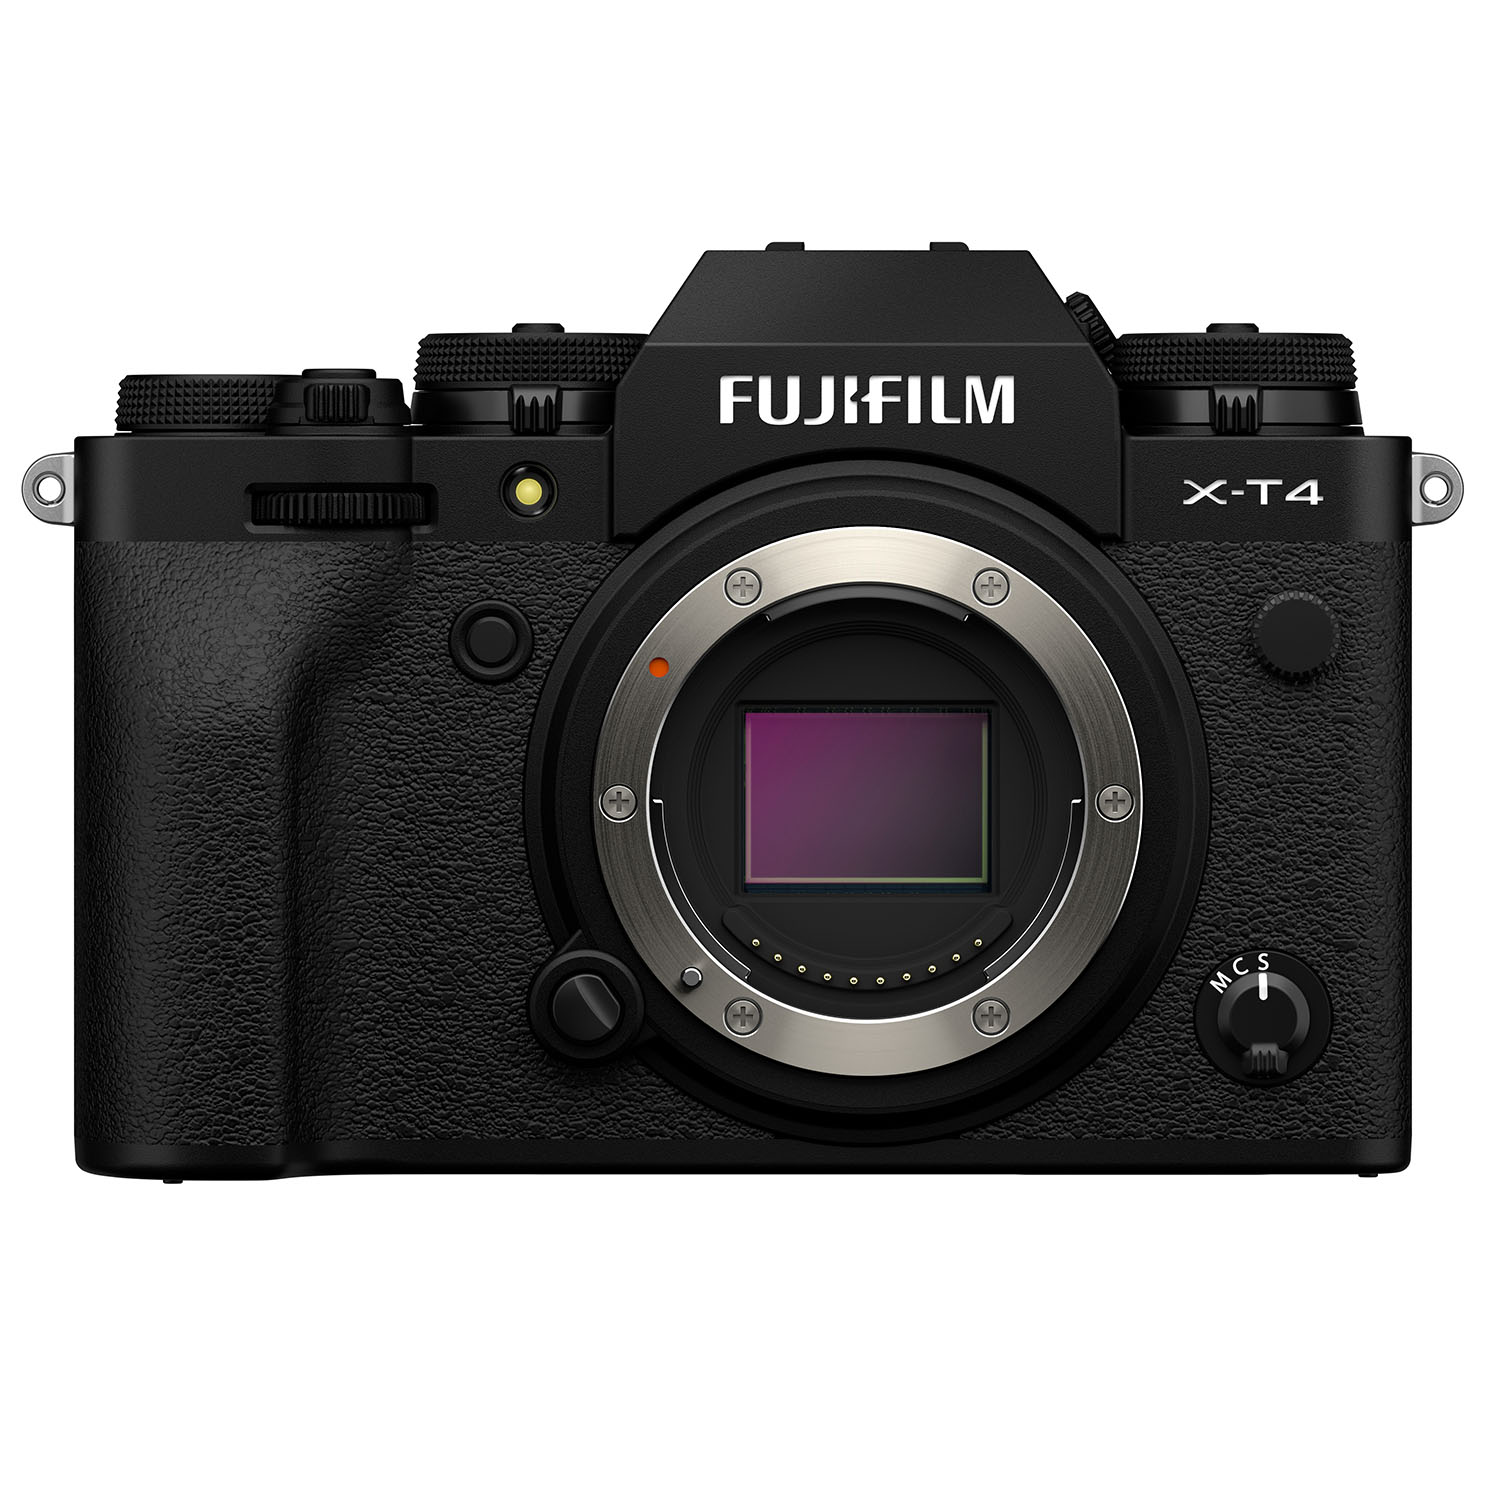 Fujifilm X-T4 Digital Mirrorless Camera